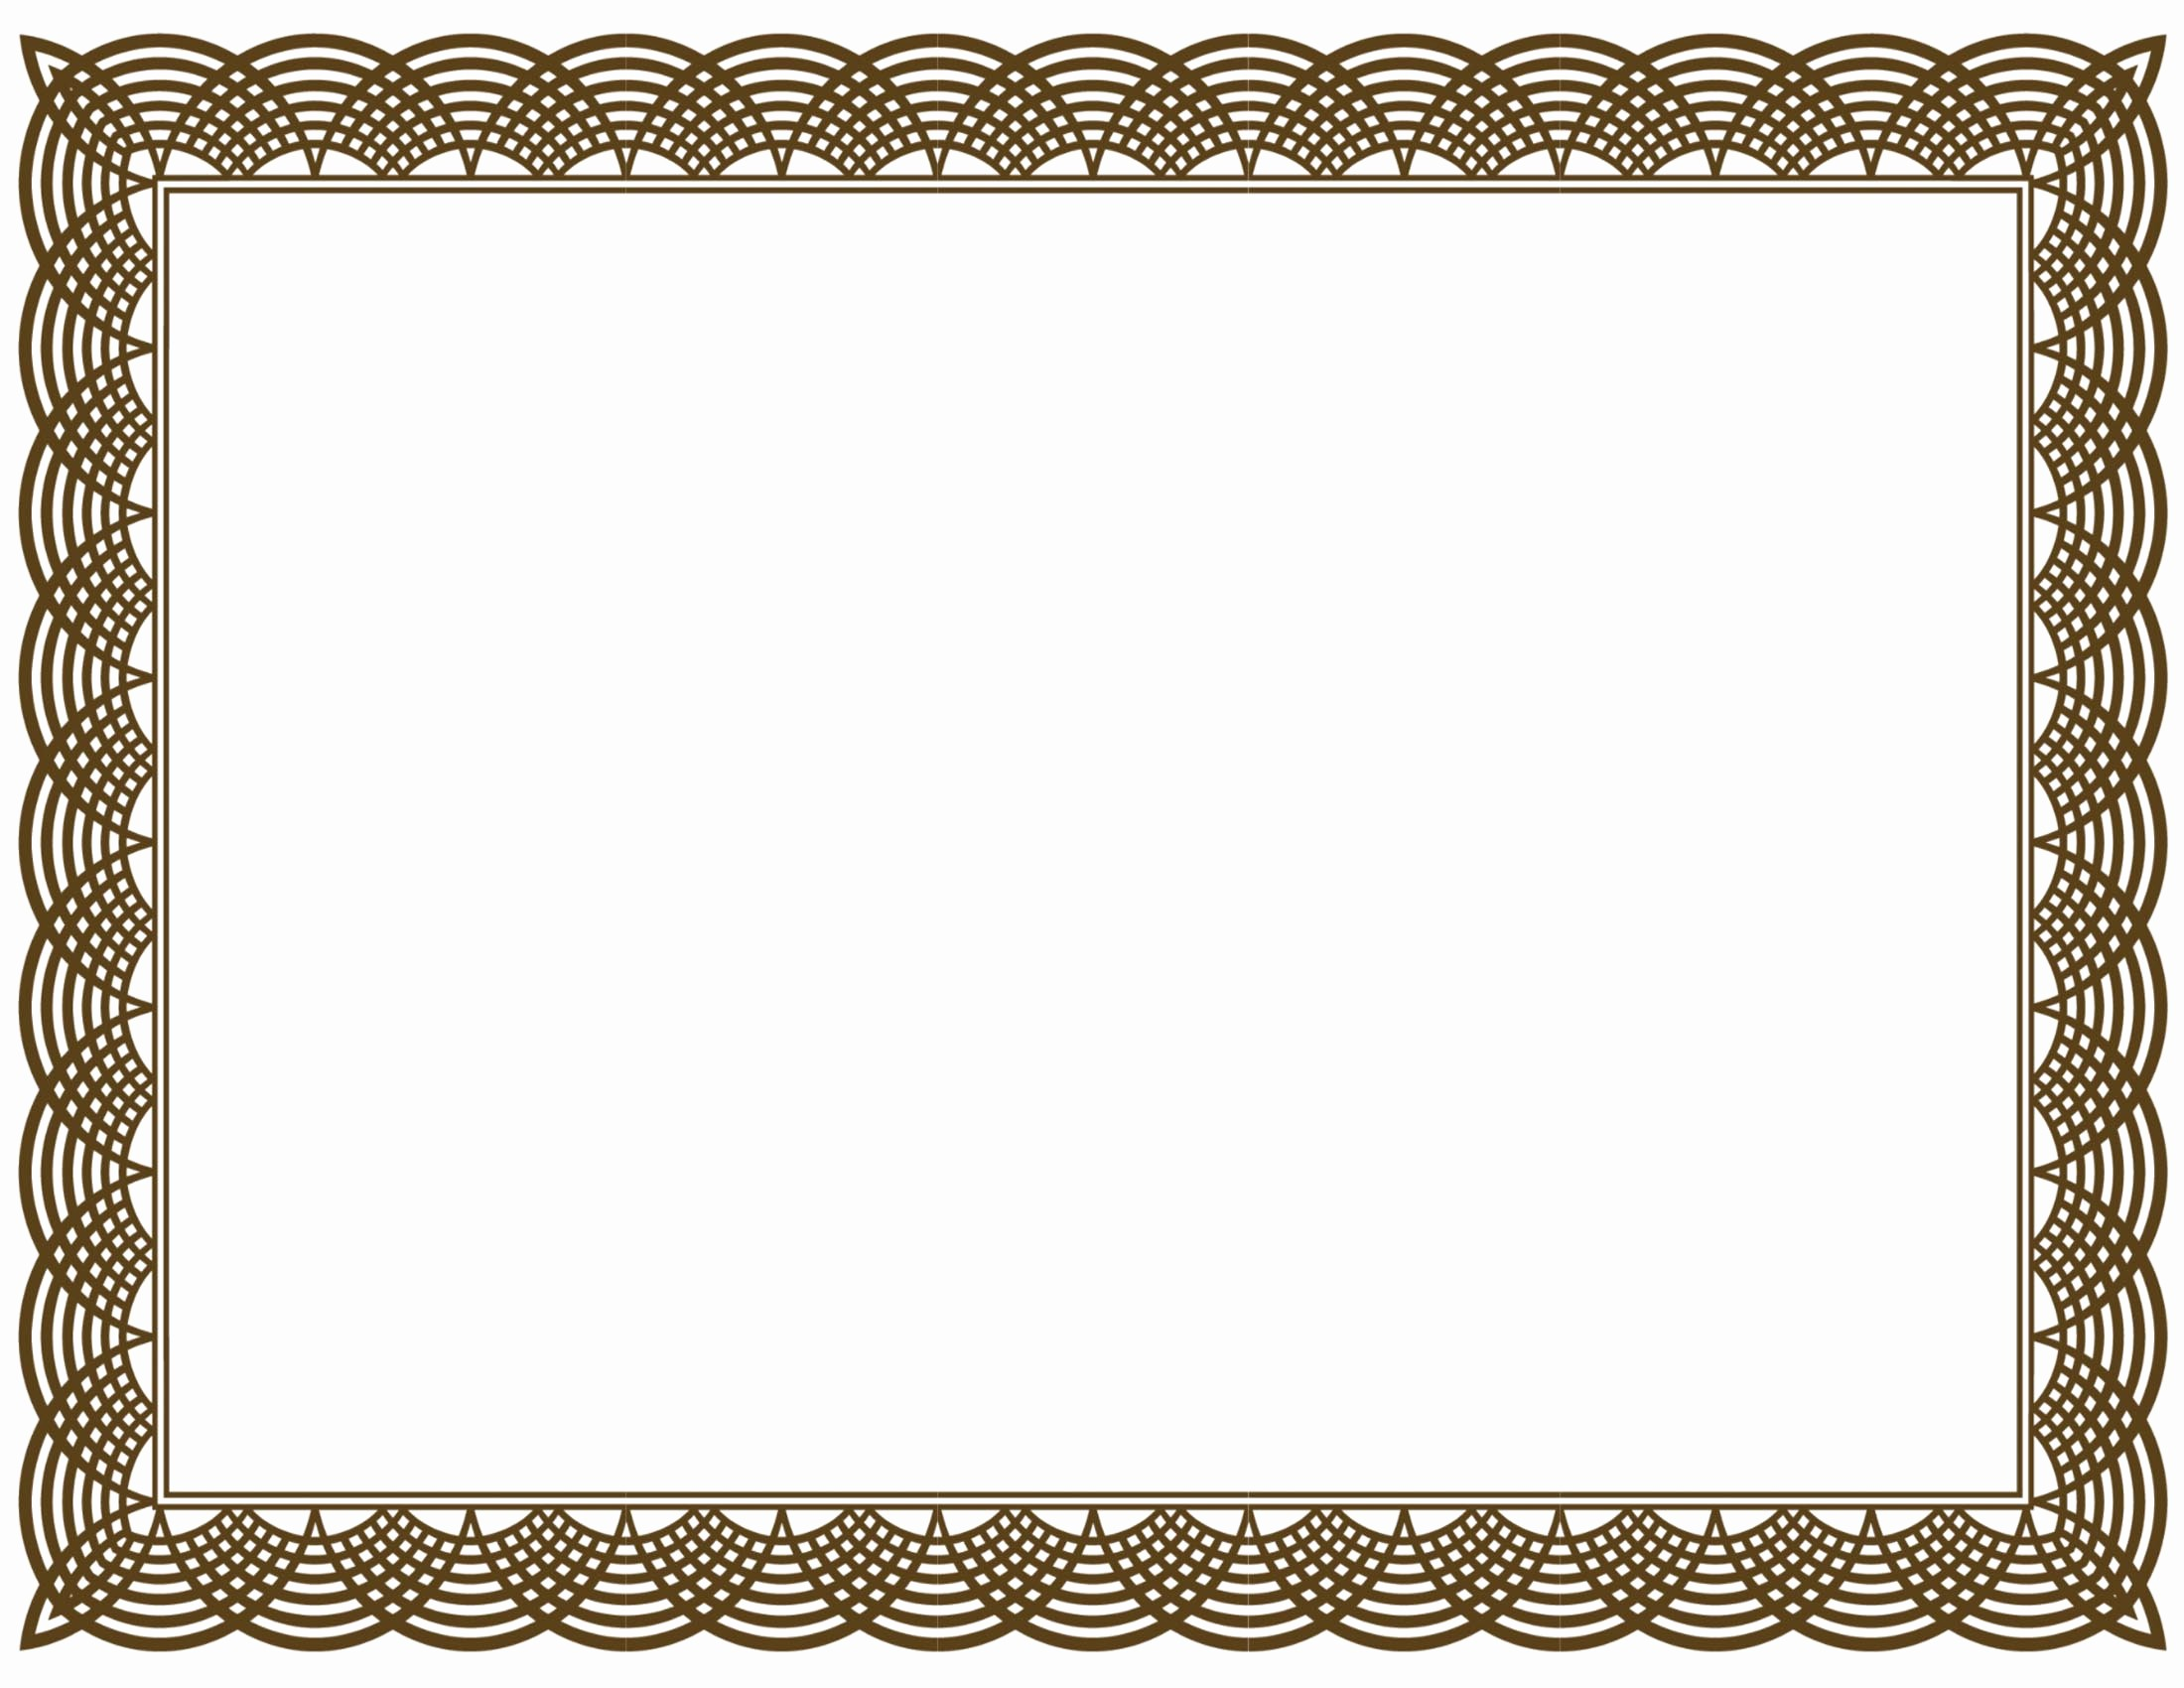 Certificate Border Design Free Download Unique 5 New Certificate Border Templates